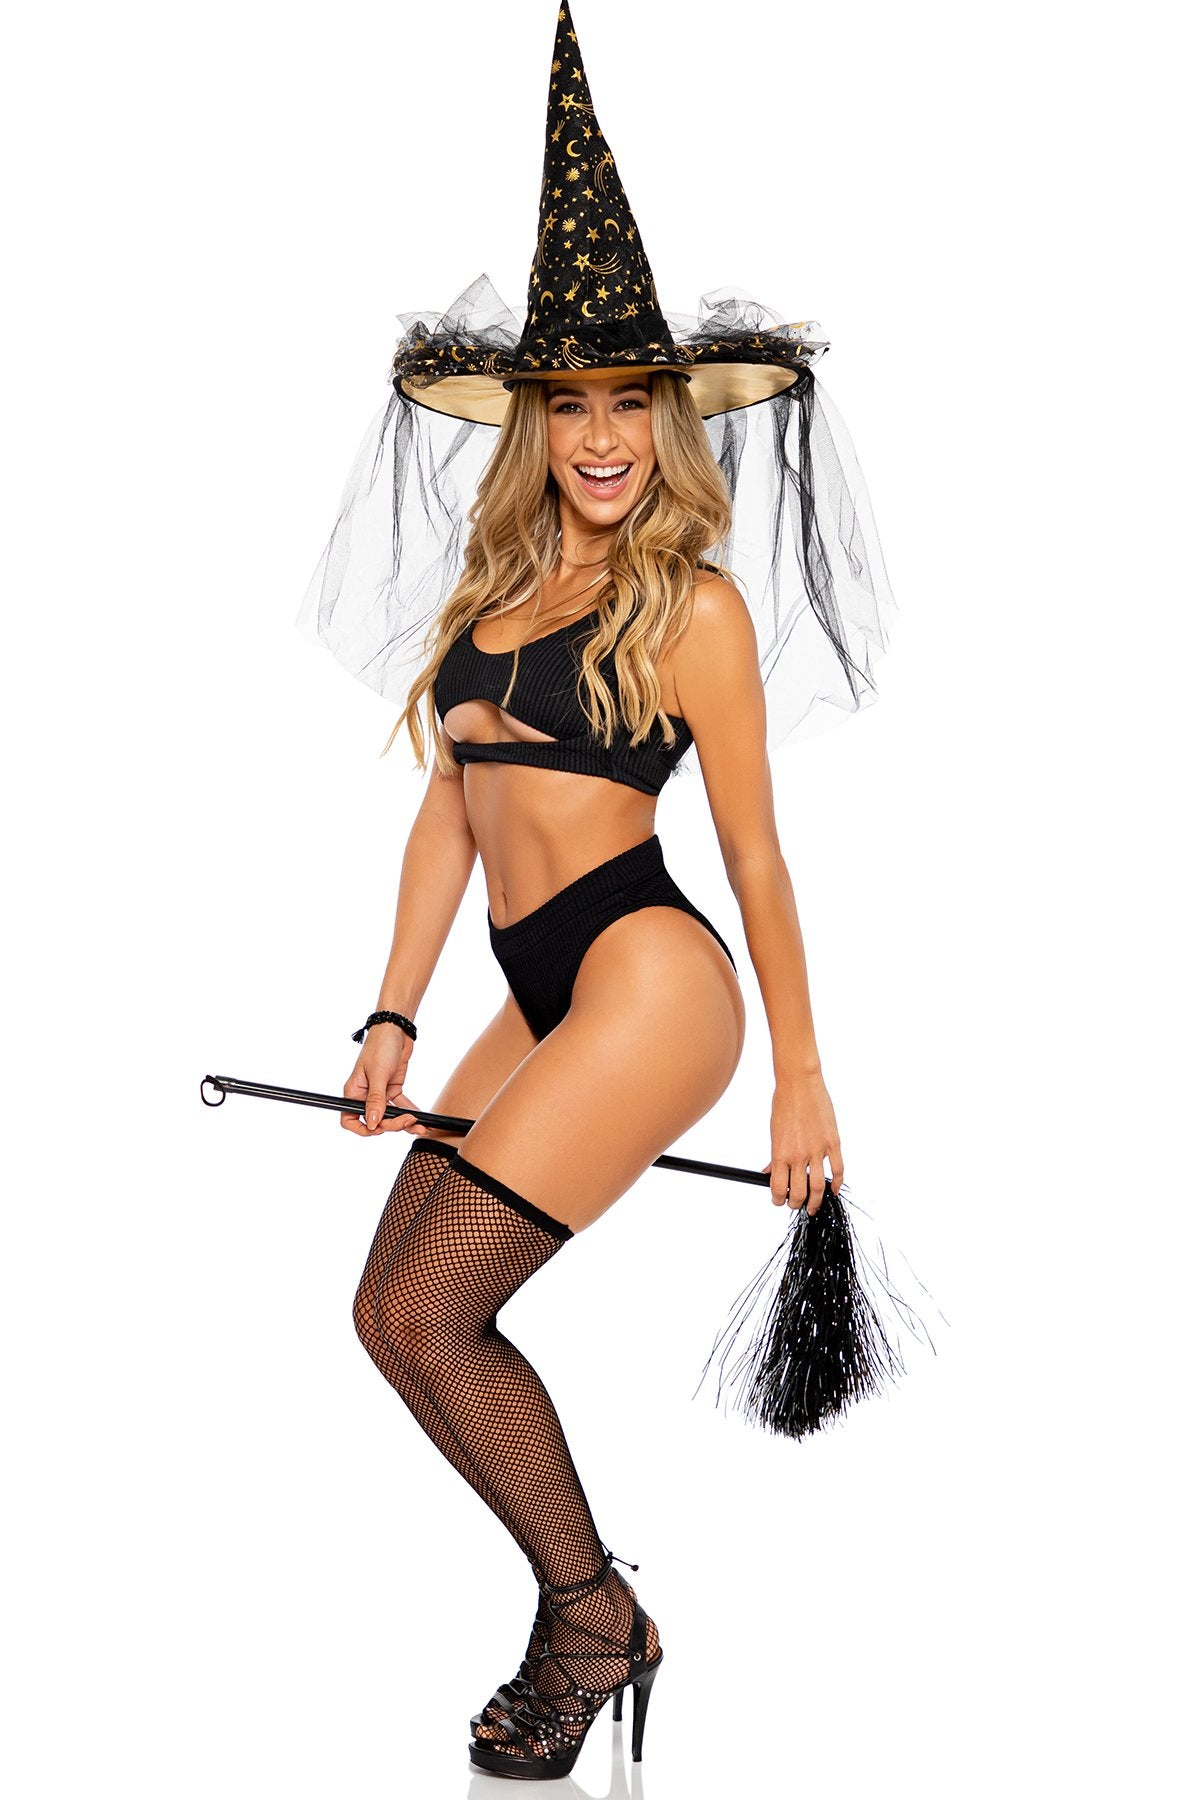 PURA CURIOSIDAD - Open Front Bralette & High Leg Banded Waist Bottom • Black Halloween